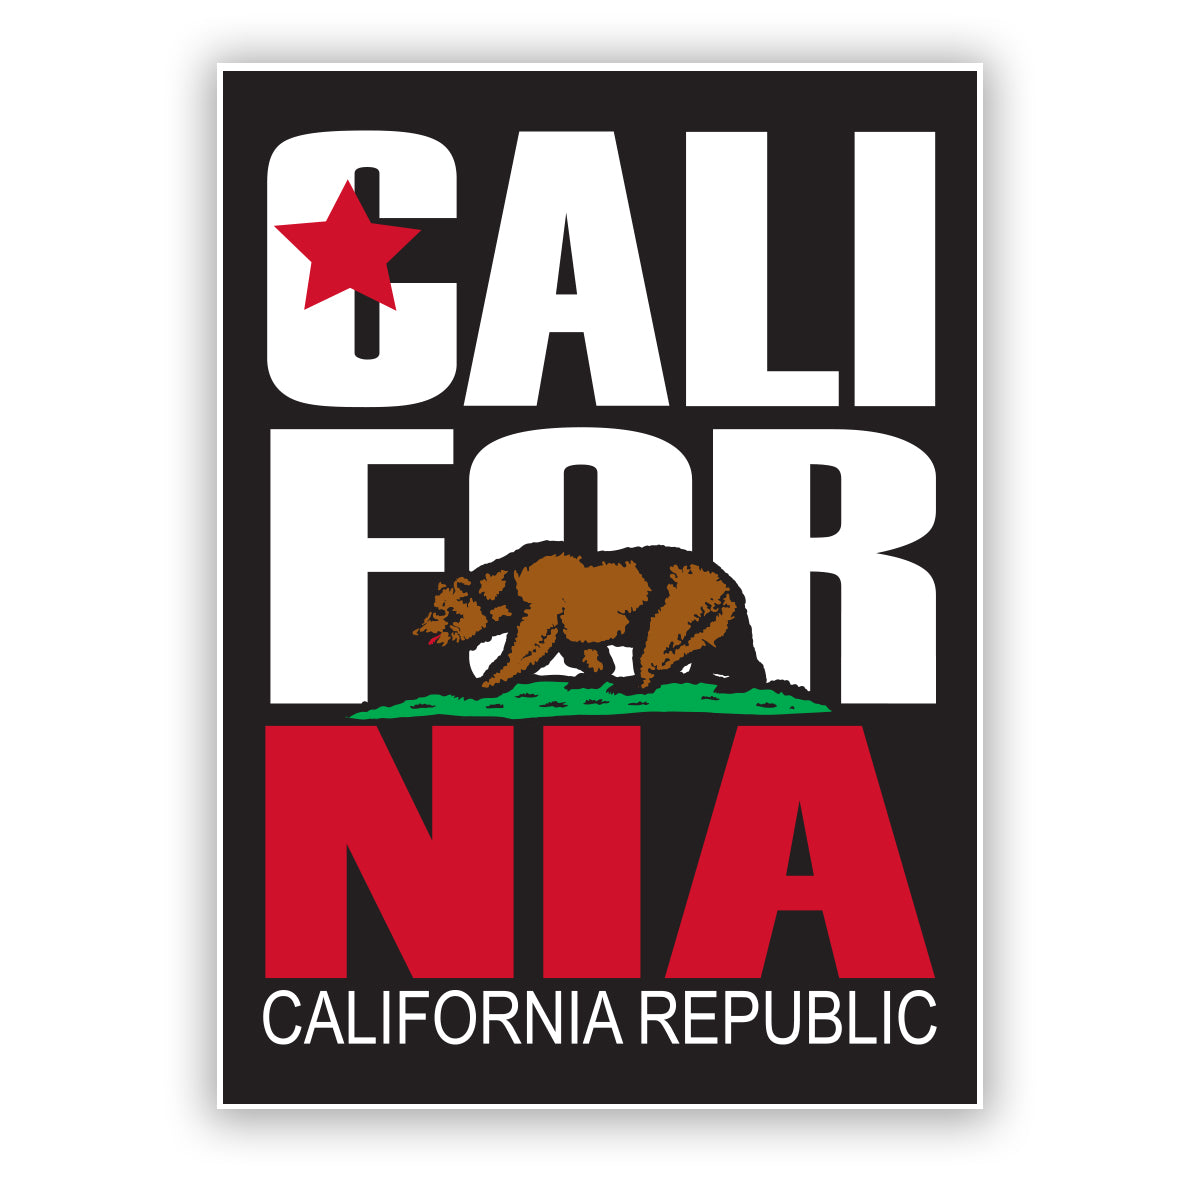 California Republic Sticker sold by San Diego Trading Company